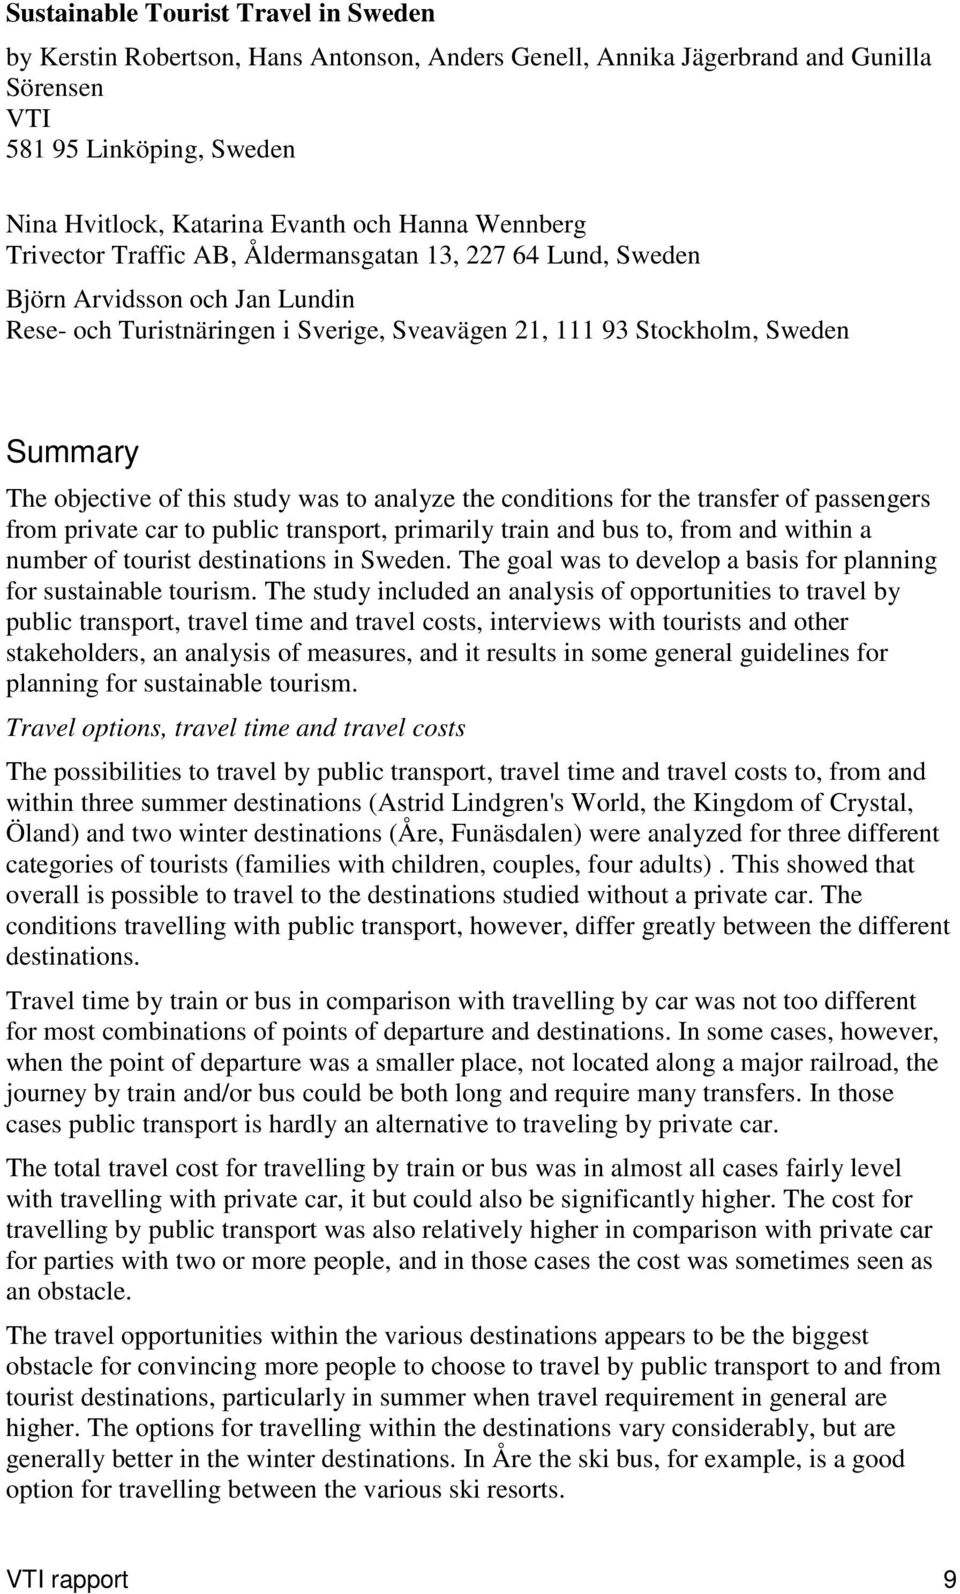 of this study was to analyze the conditions for the transfer of passengers from private car to public transport, primarily train and bus to, from and within a number of tourist destinations in Sweden.